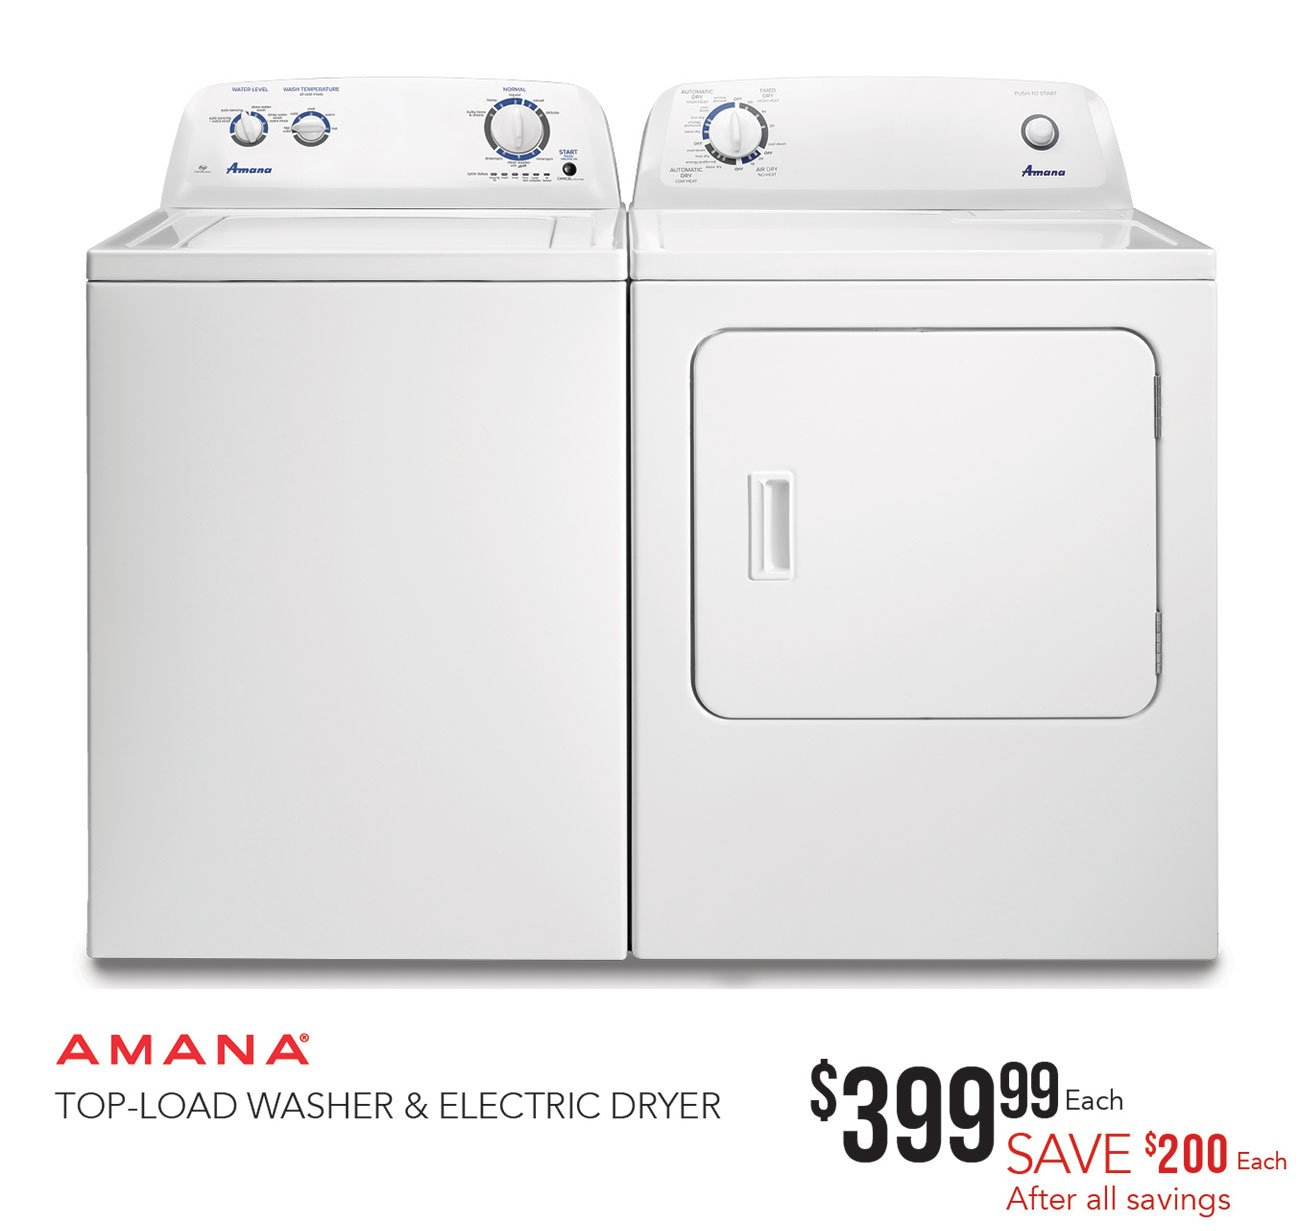 amana-top-load-washer-and-dryer